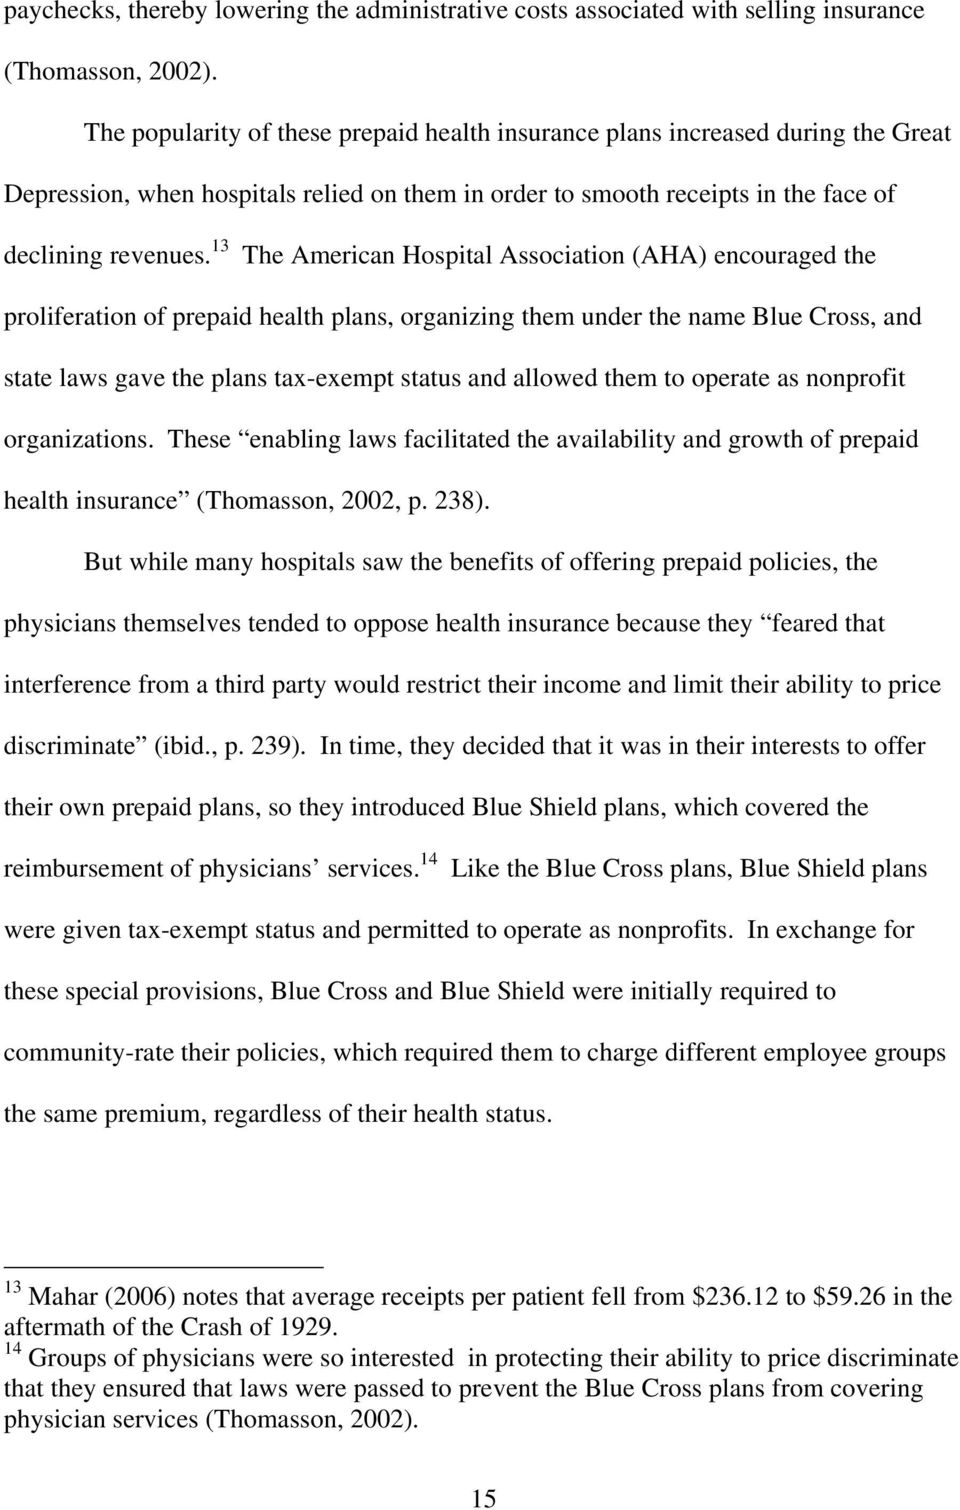 13 The American Hospital Association (AHA) encouraged the proliferation of prepaid health plans, organizing them under the name Blue Cross, and state laws gave the plans tax-exempt status and allowed